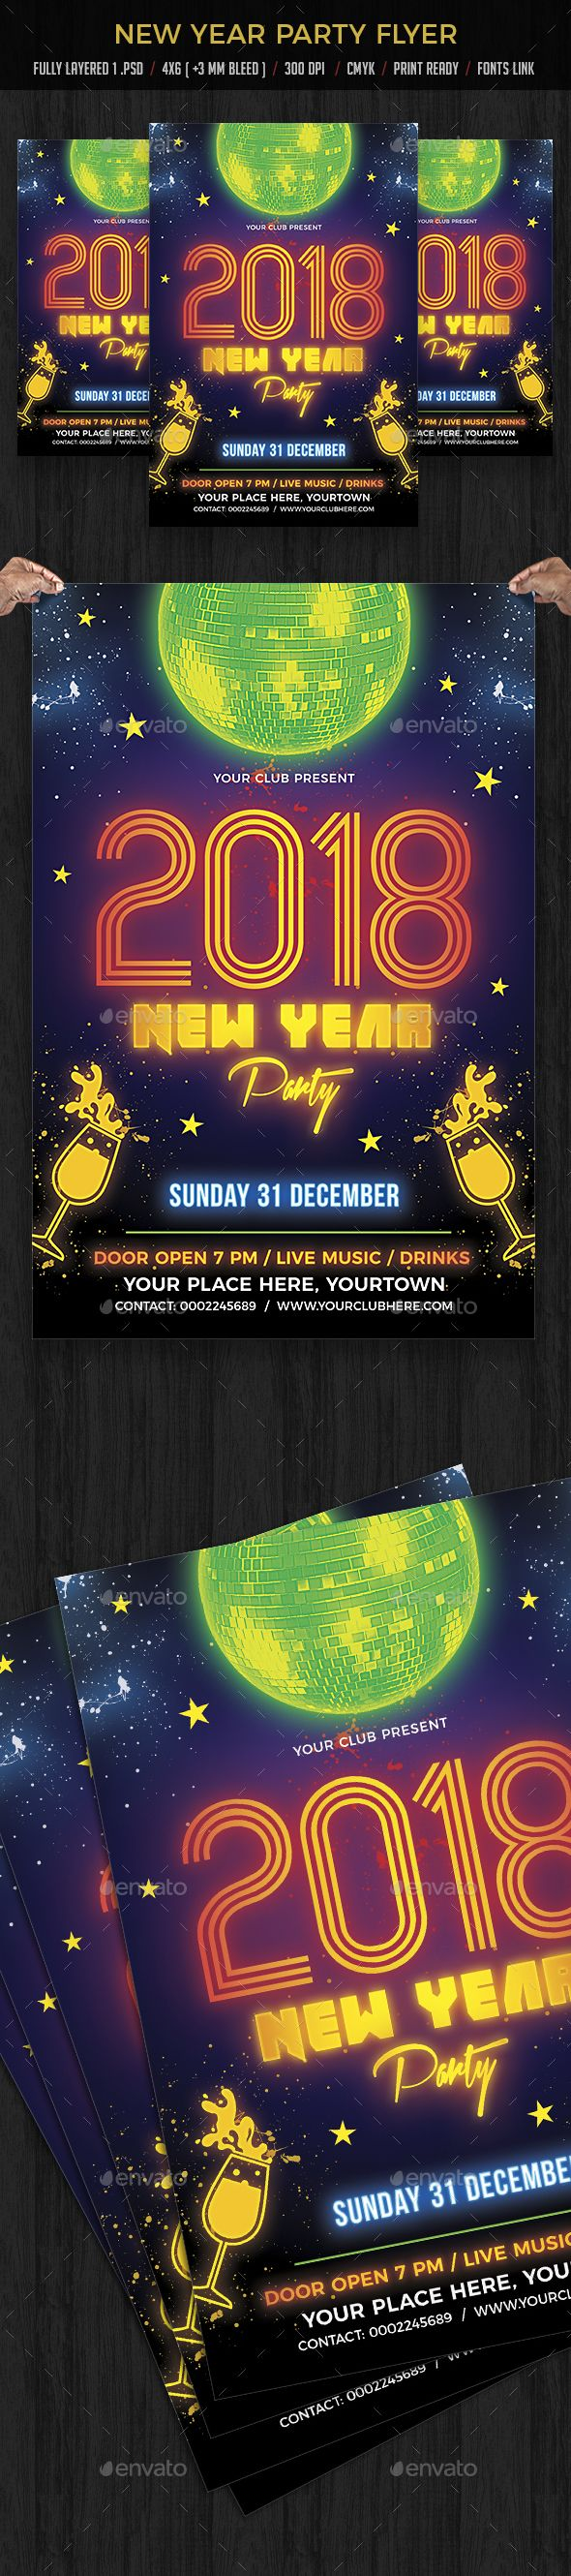 New Year Party — Photoshop PSD #Creativeartx #birthday party • Available here ➝ https://graphicriver.net/item/new-year-party/20858810?ref=pxcr